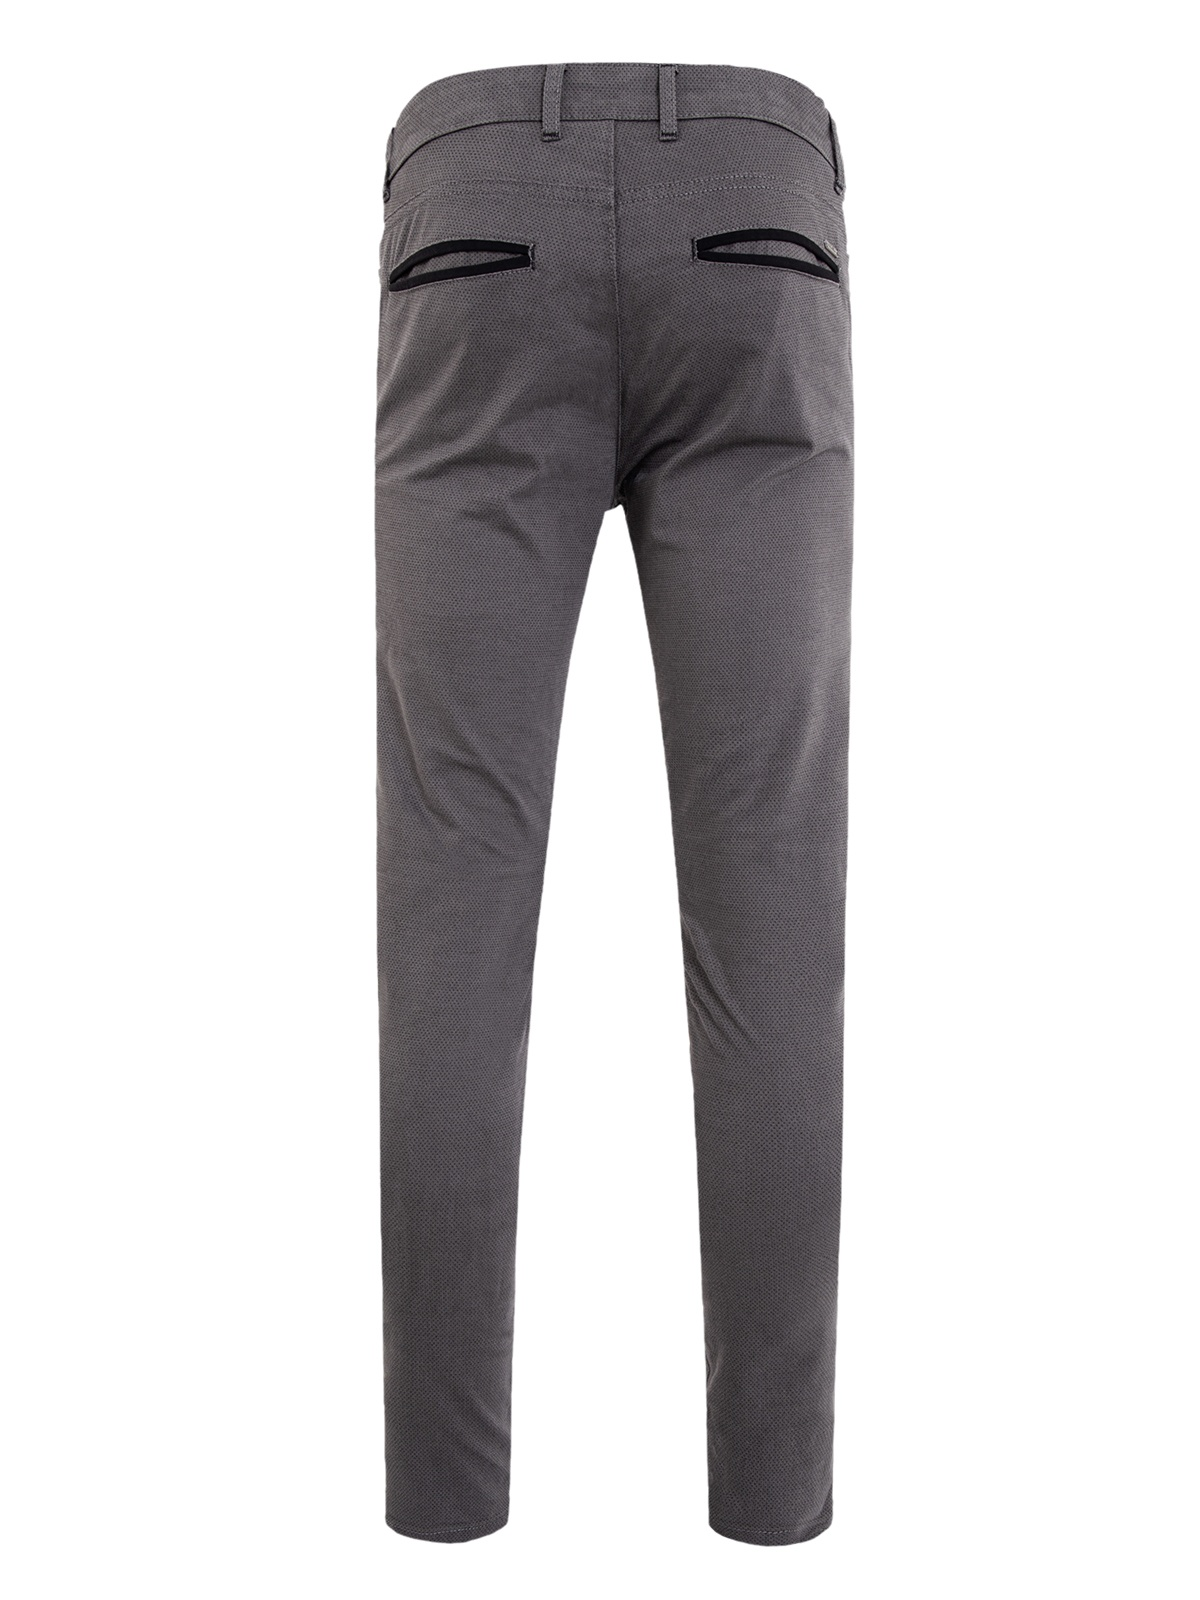 CALÇA SMK GRAY EVEREST